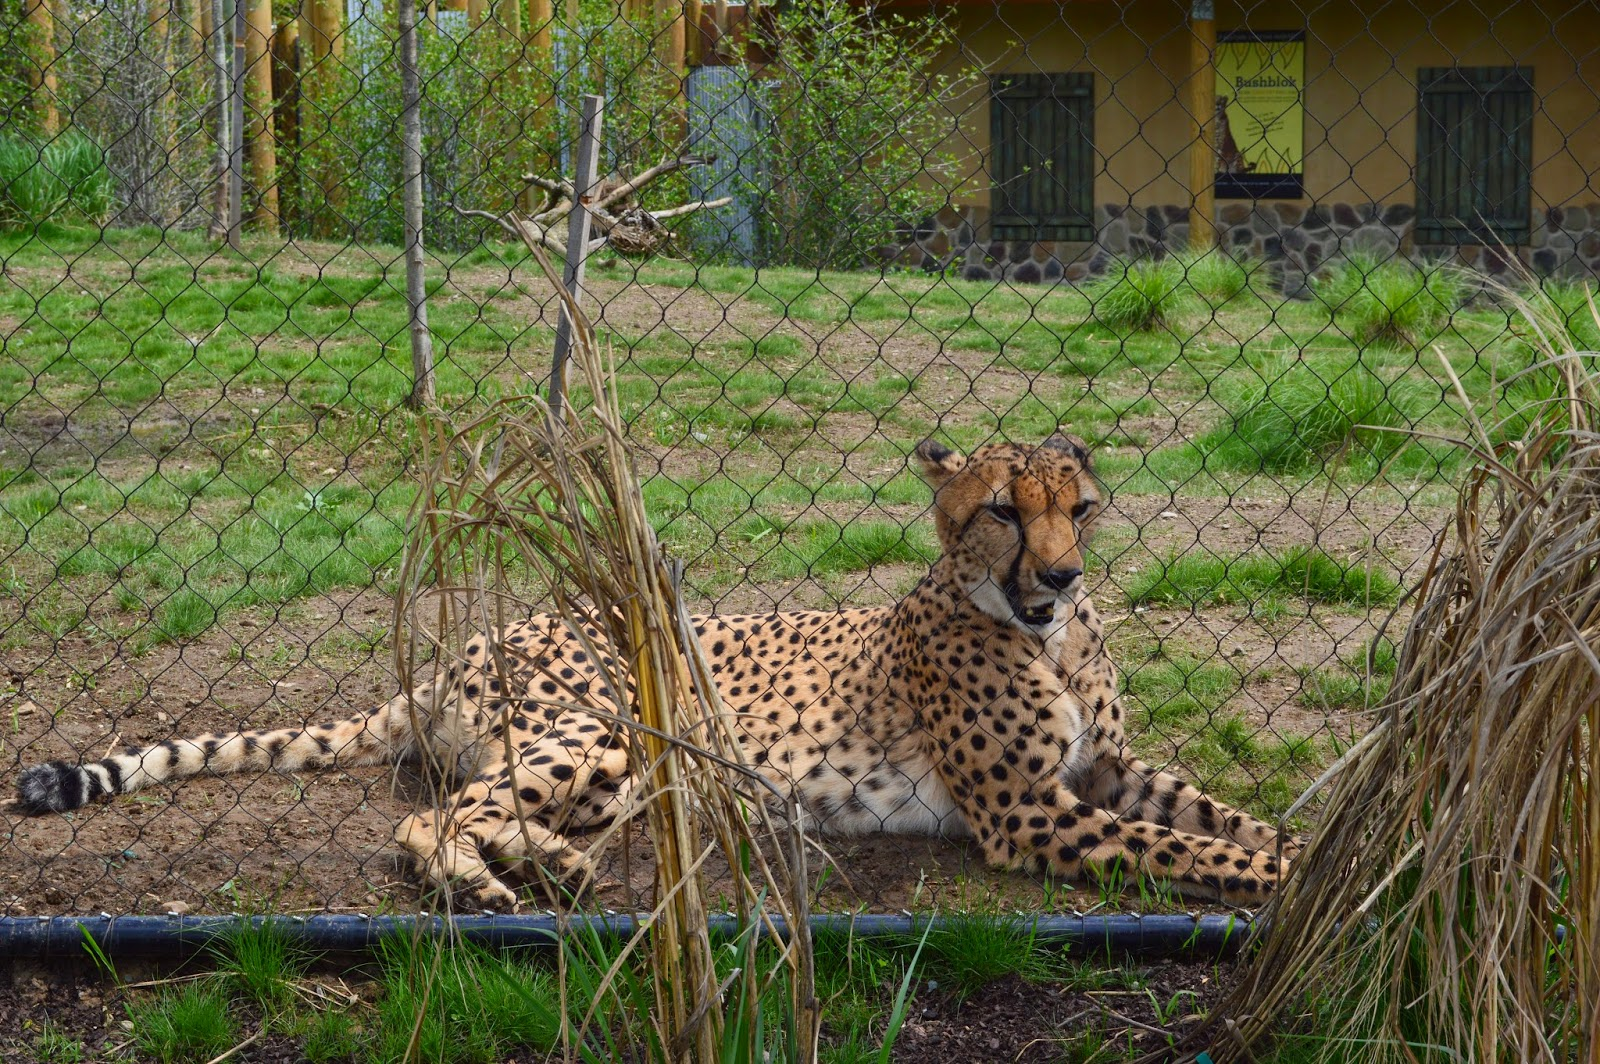 cheetahs in zoos Dogs at the zoo since the 1980s, the thoughtco (accessed april 19, 2018) copy citation continue reading the role of zoos in endangered species conservation police, search and rescue dogs: the animal rights debate.